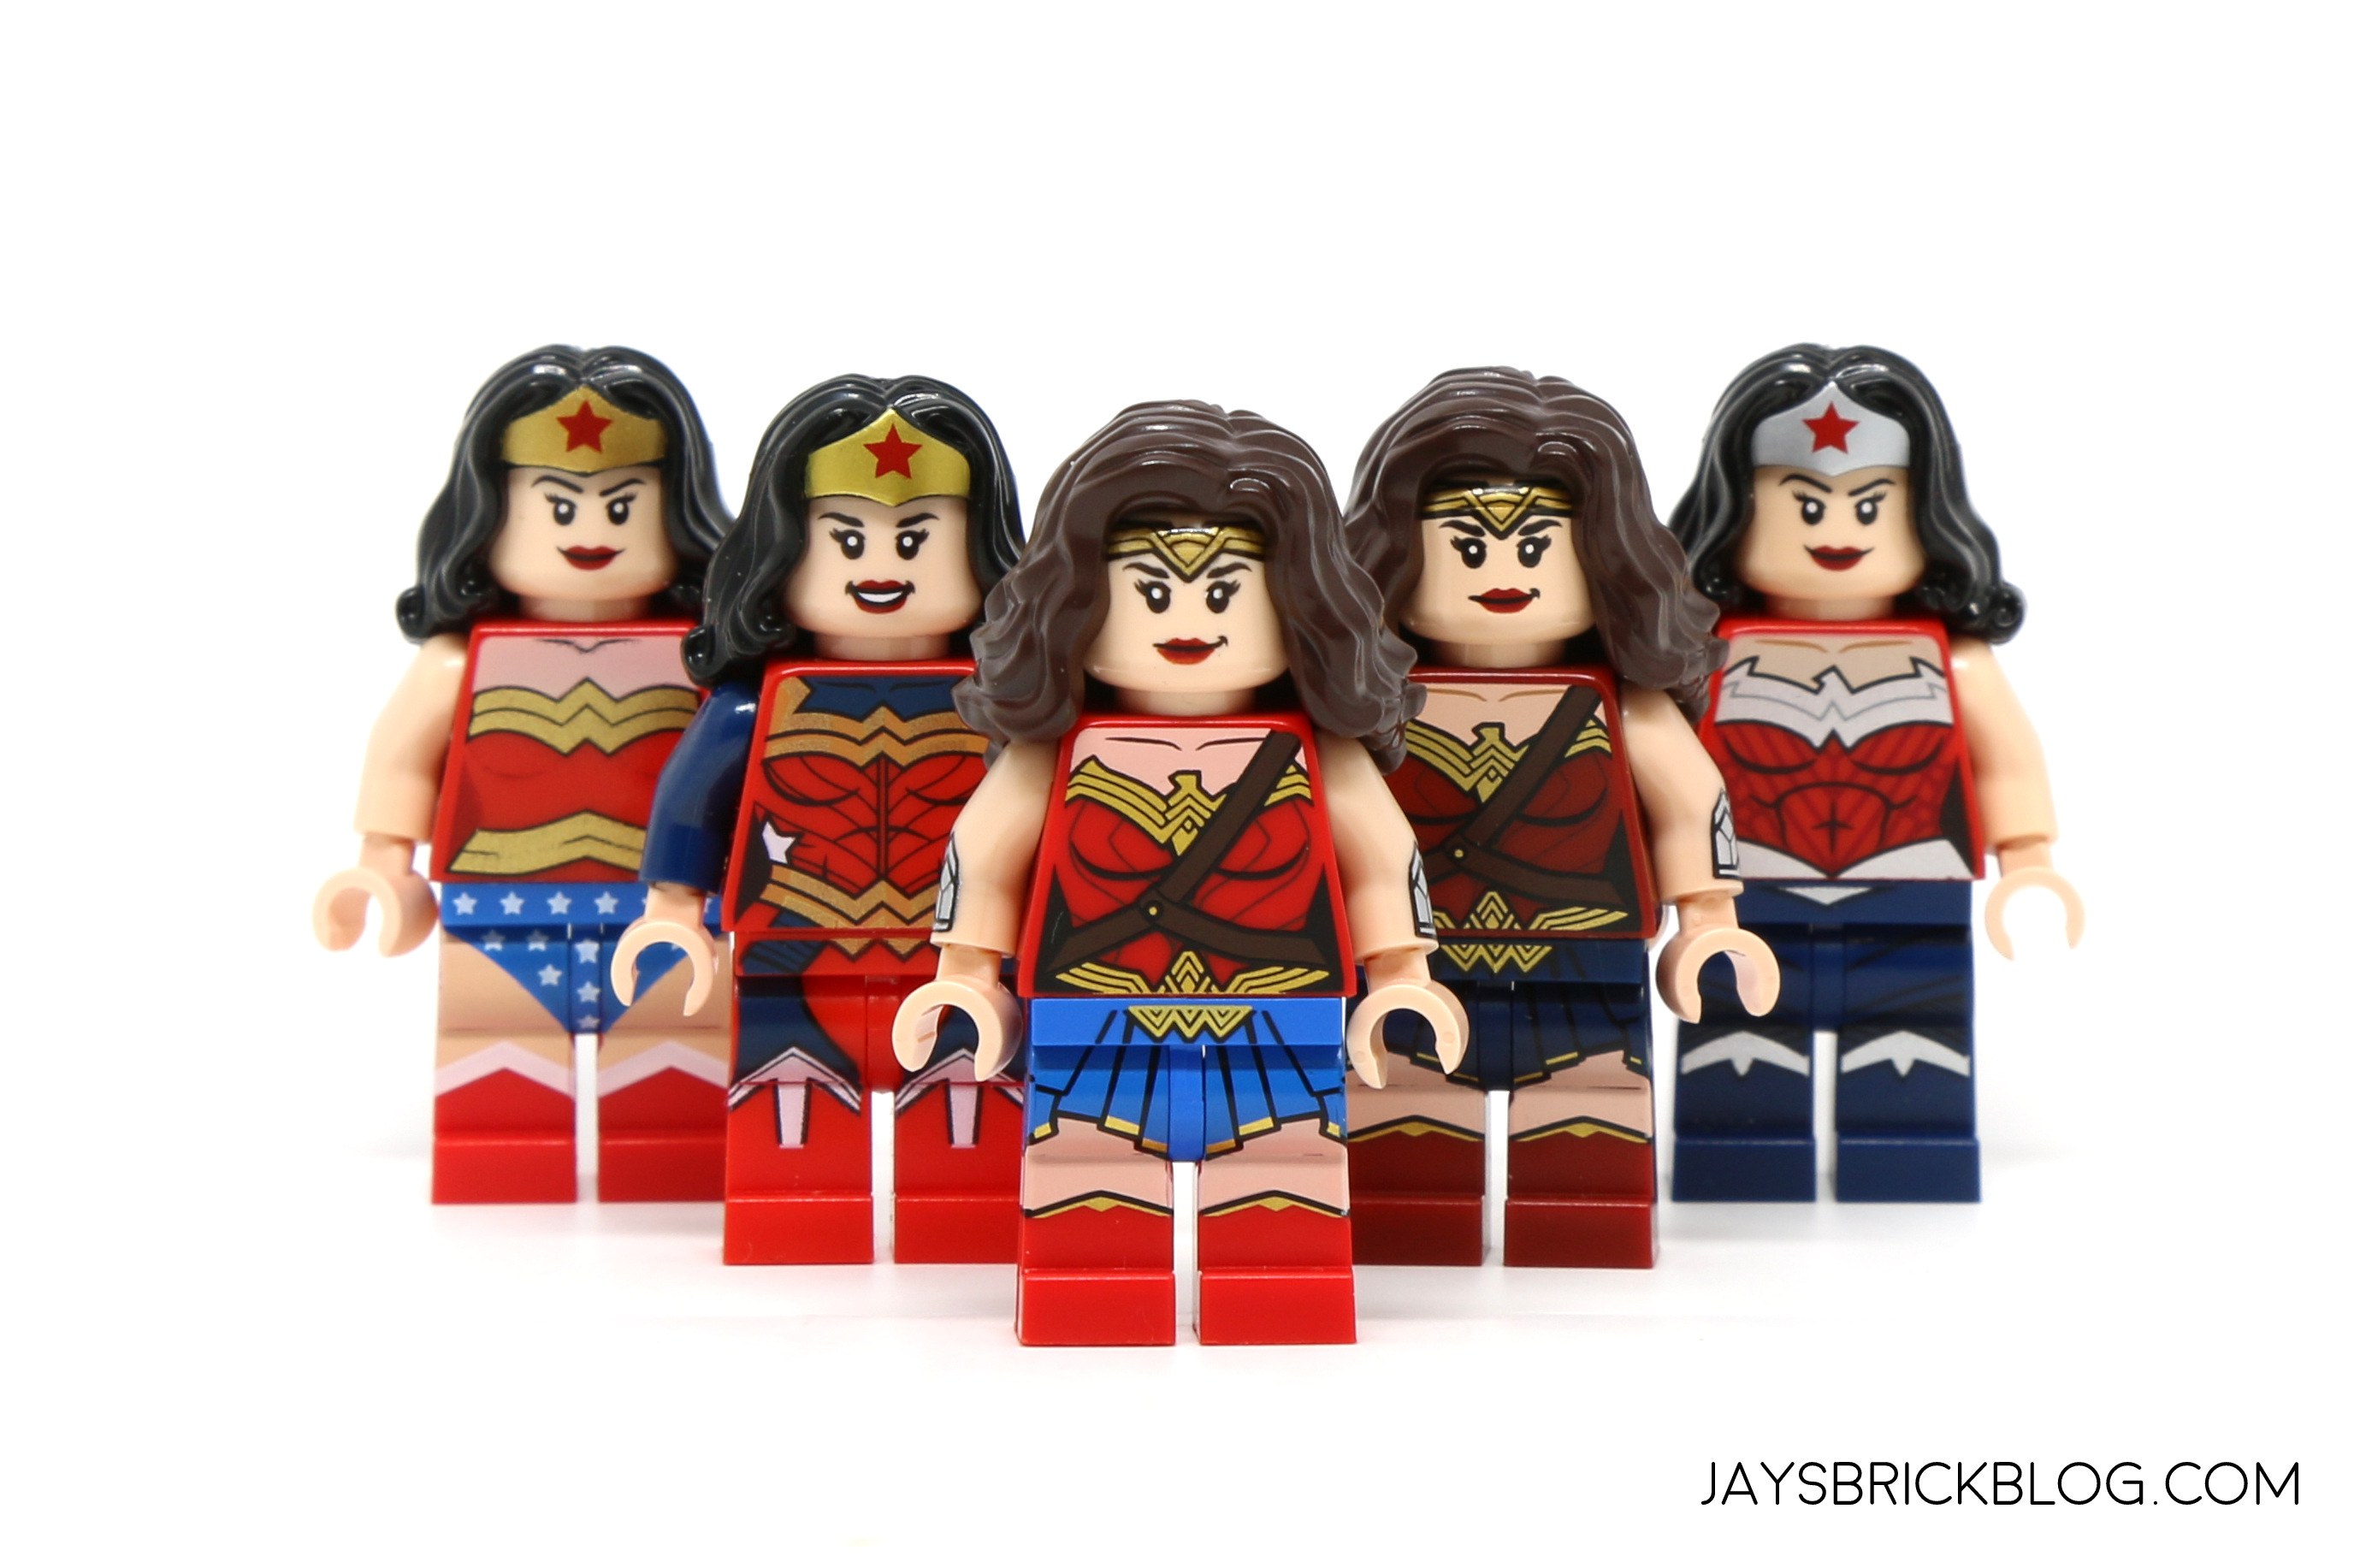 and heres a look at all the wonder woman minifigures minus the mighty micros one at a glance the newest version seems to also share the pink tinge issue - Lego Wonder Woman